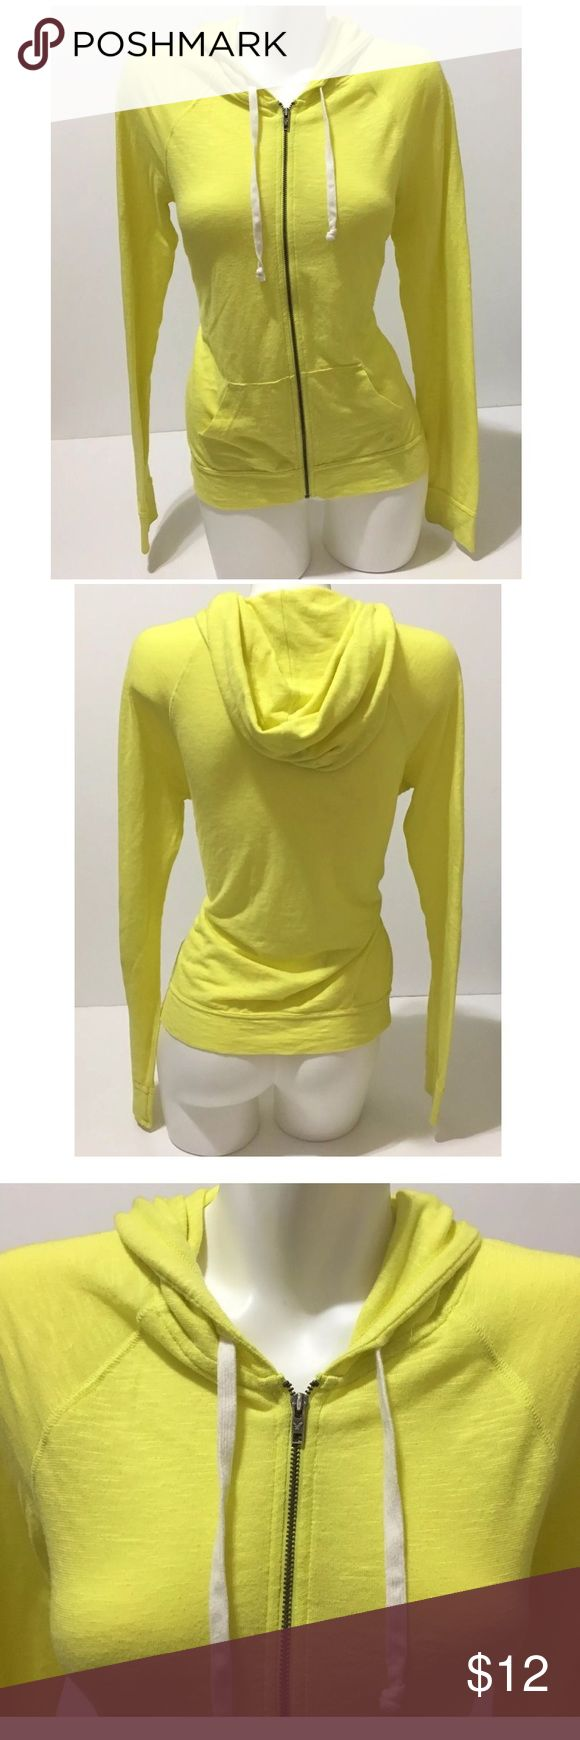 American Eagle Hoodie Sweatshirt Zip Yellow Large American Eagle Outfitters Womens Hoodie Sweatshirt Zip Up Yellow size Large  PLEASE NOTE- Small hole by pockets SHOWN IN PHOTO 6, light amount of pilling, in person this hoodie looks more brighter and more of a highlighter yellow color.  Length, Shoulder to Bottom: 23 inches Armpit to Armpit: 18 3/4 inches Armpit to end of Sleeve: 18 3/4 inches  Inventory# AP12 American Eagle Outfitters Tops Sweatshirts & Hoodies